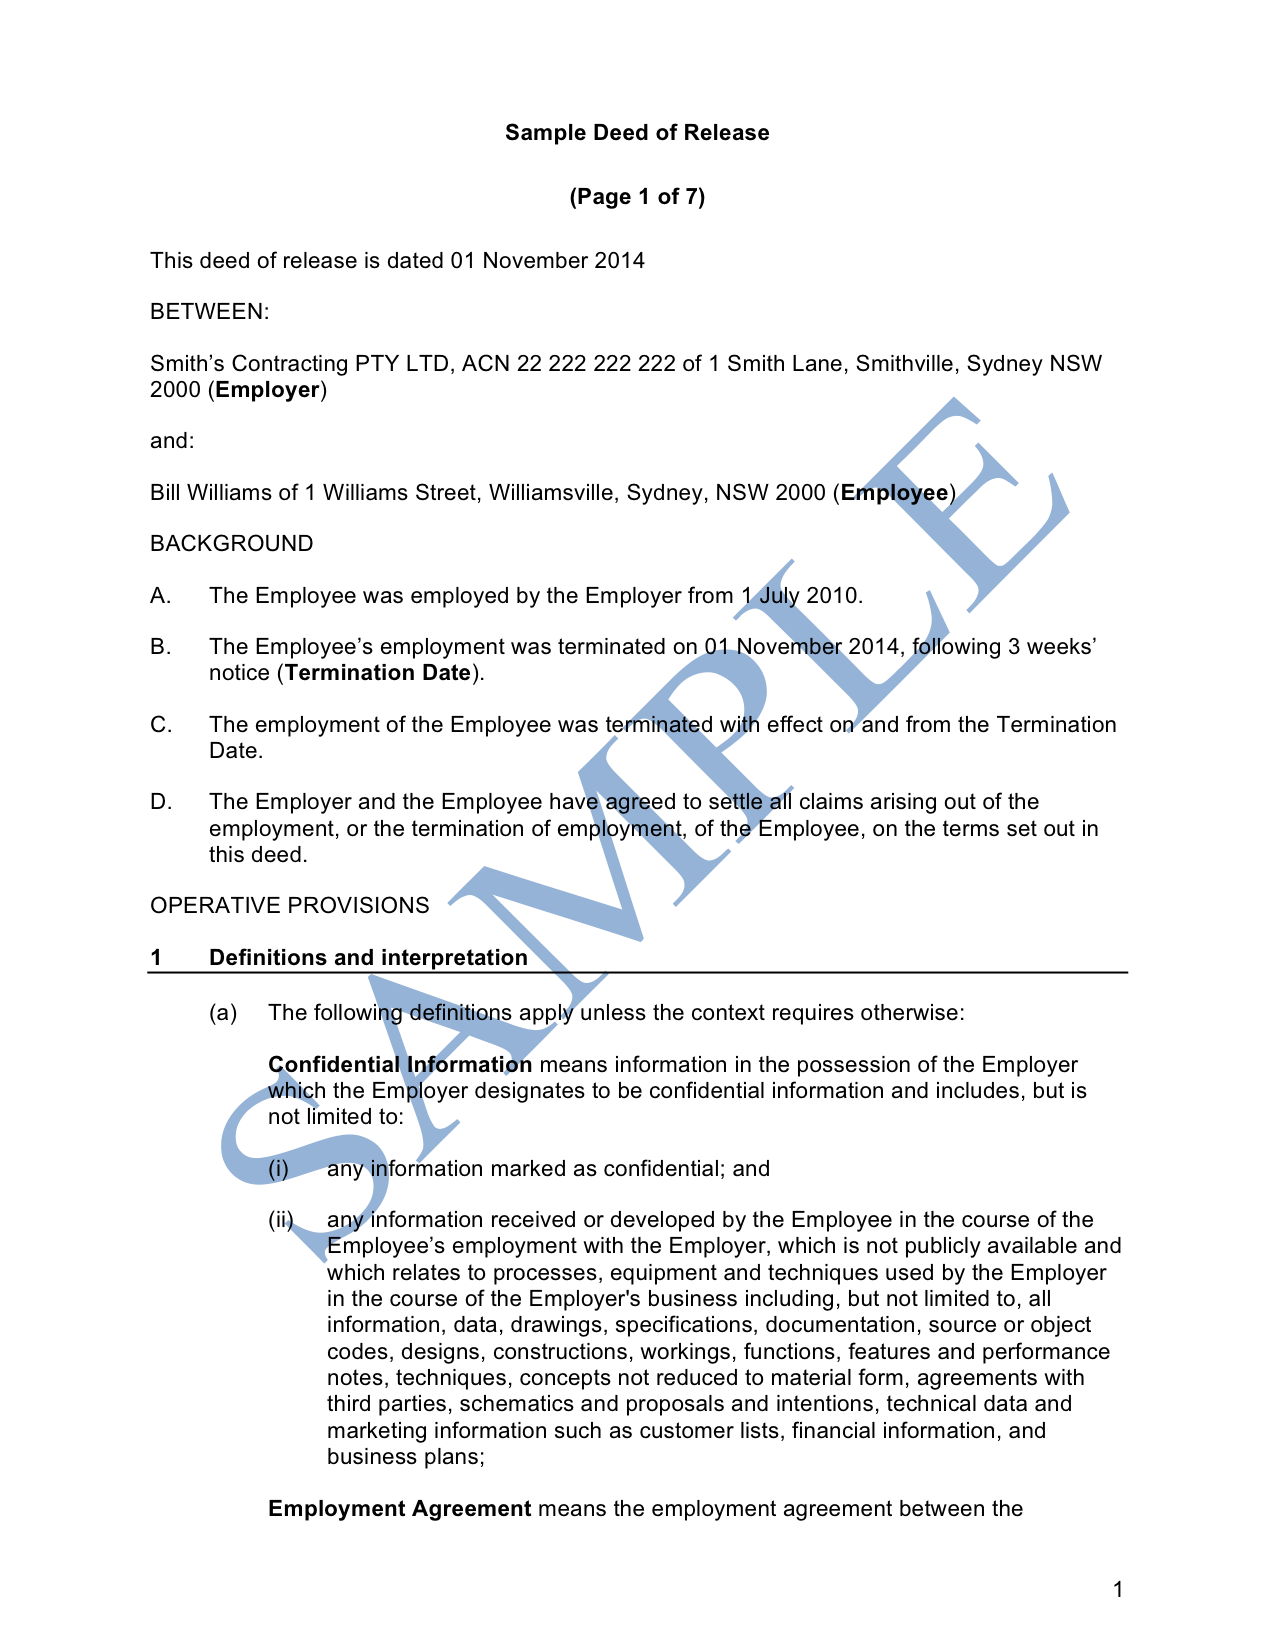 Deed of release sample lawpath deed of release sample spiritdancerdesigns Choice Image